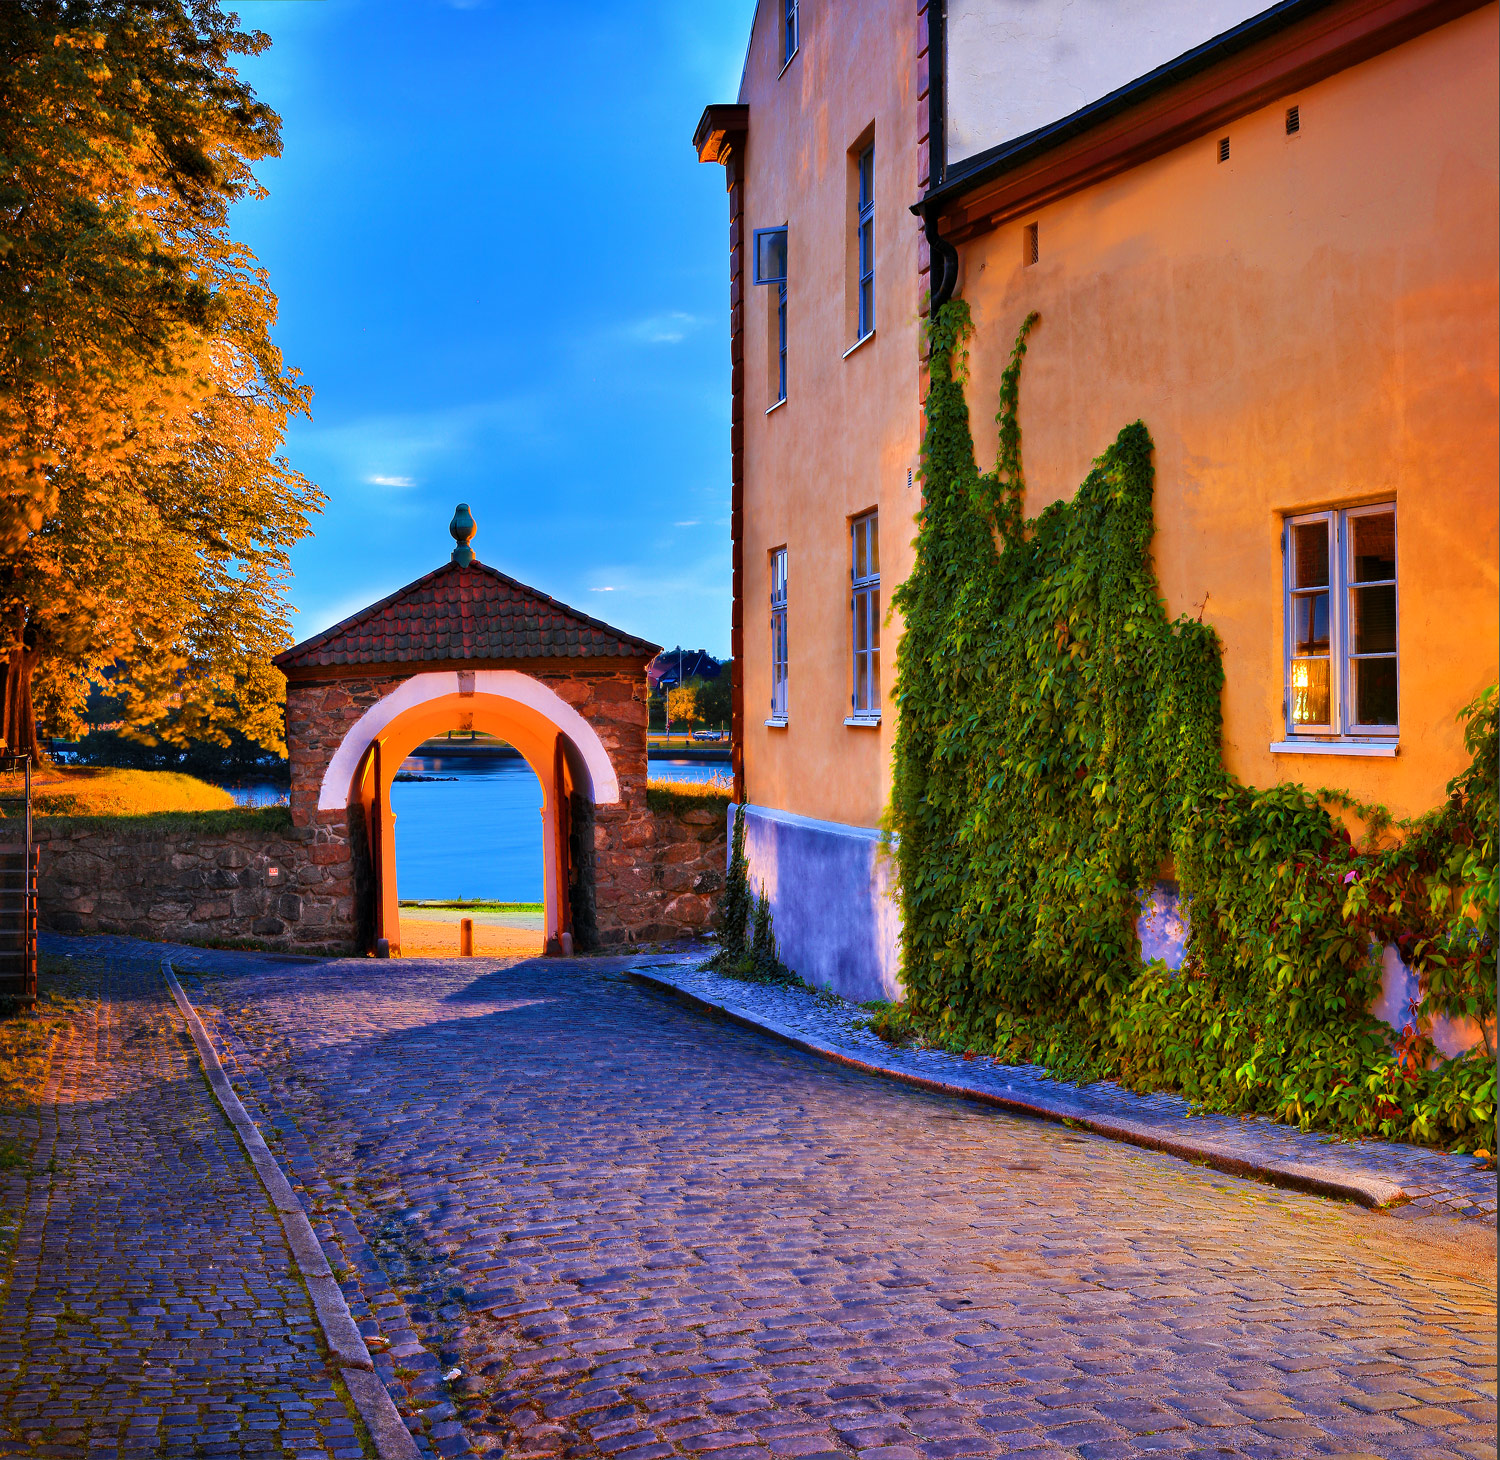 The Old Town Fredrikstad